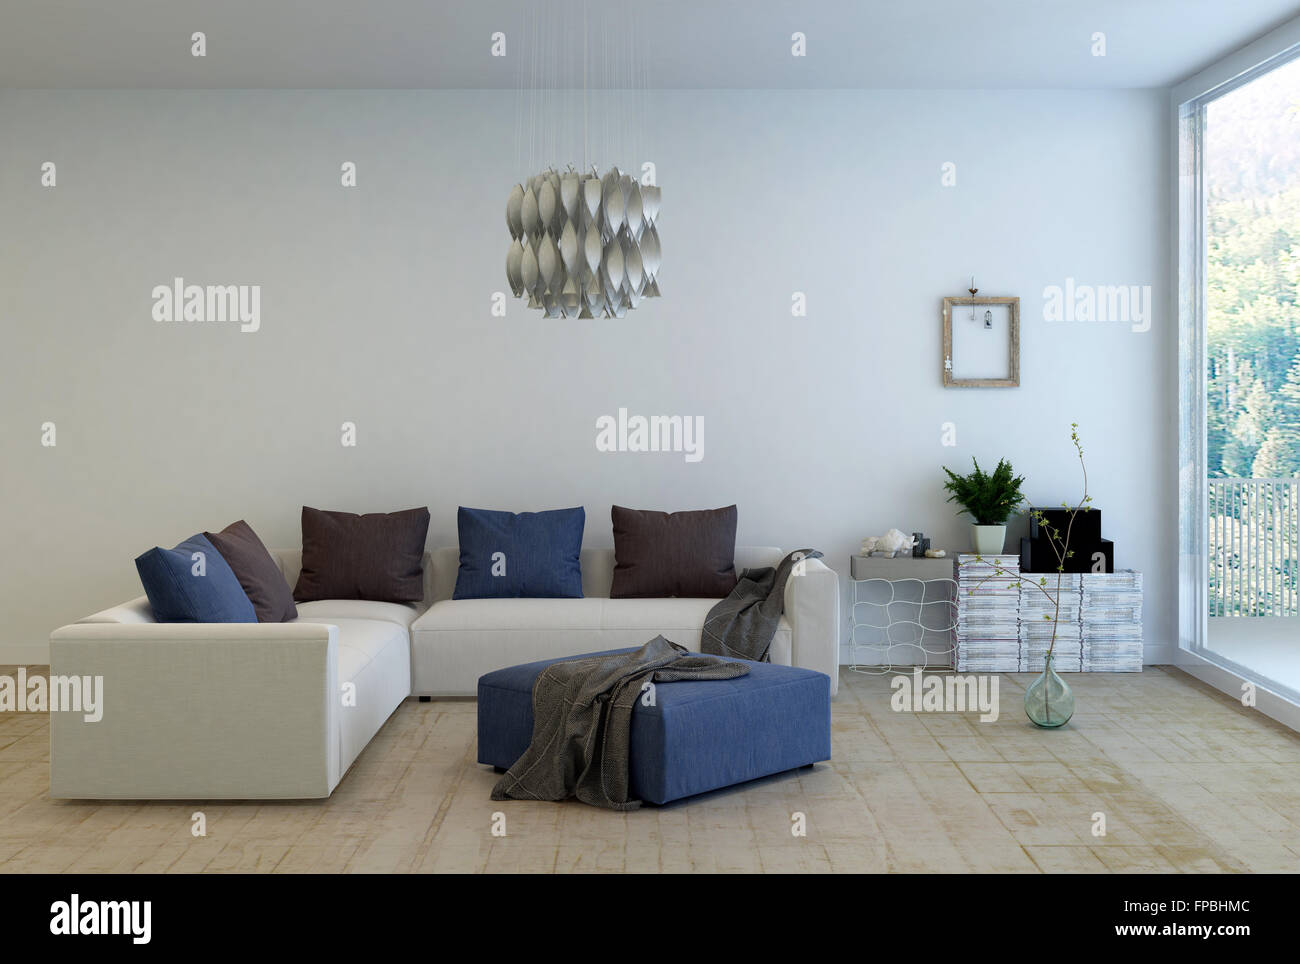 Living Room Interior Decorated With Simple Furnishings L